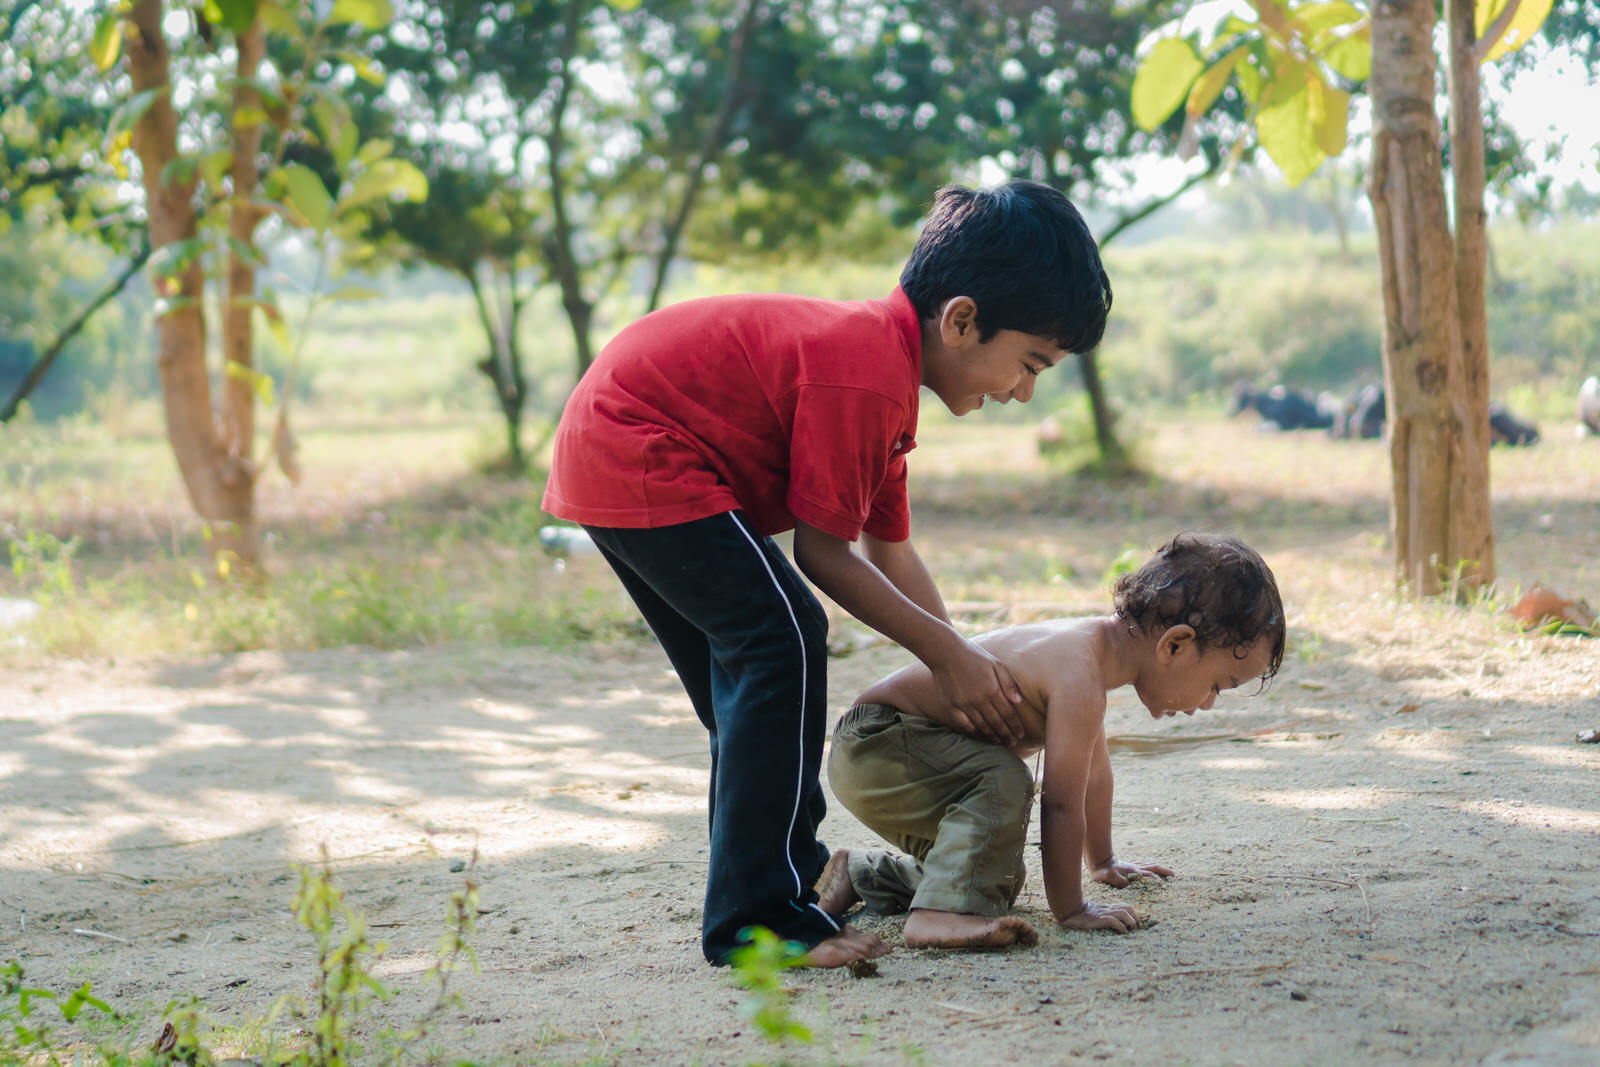 23122017-Boys-Playing-Water-Tank-356.jpg